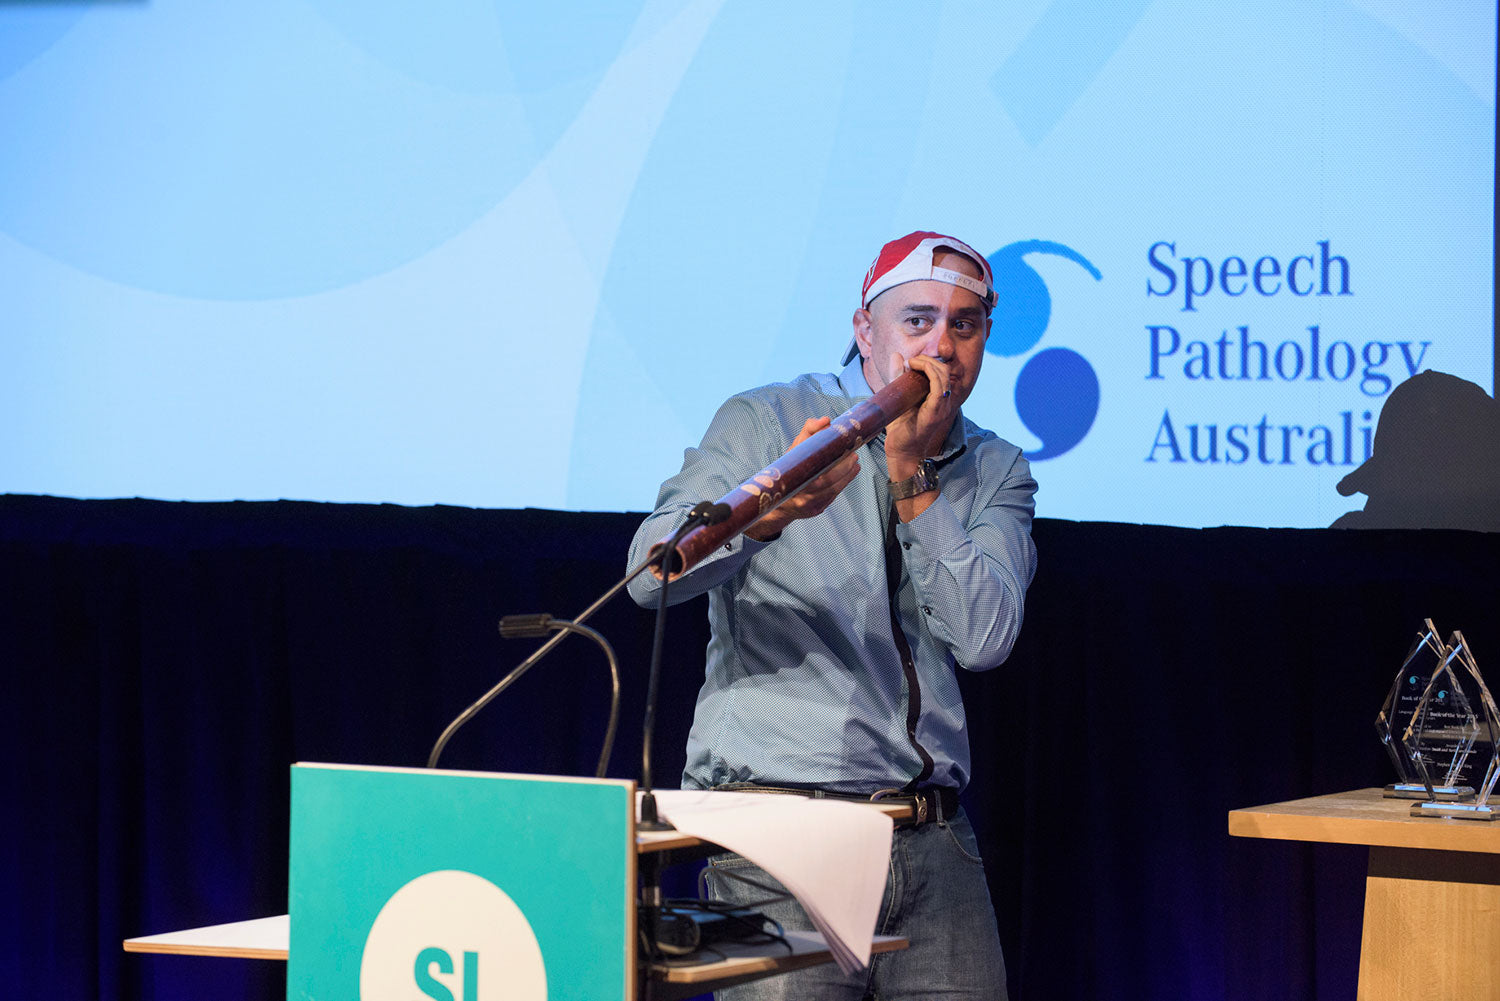 Gregg Dreise breaks out the didgeridoo during the 2015 Speech Pathology Awards